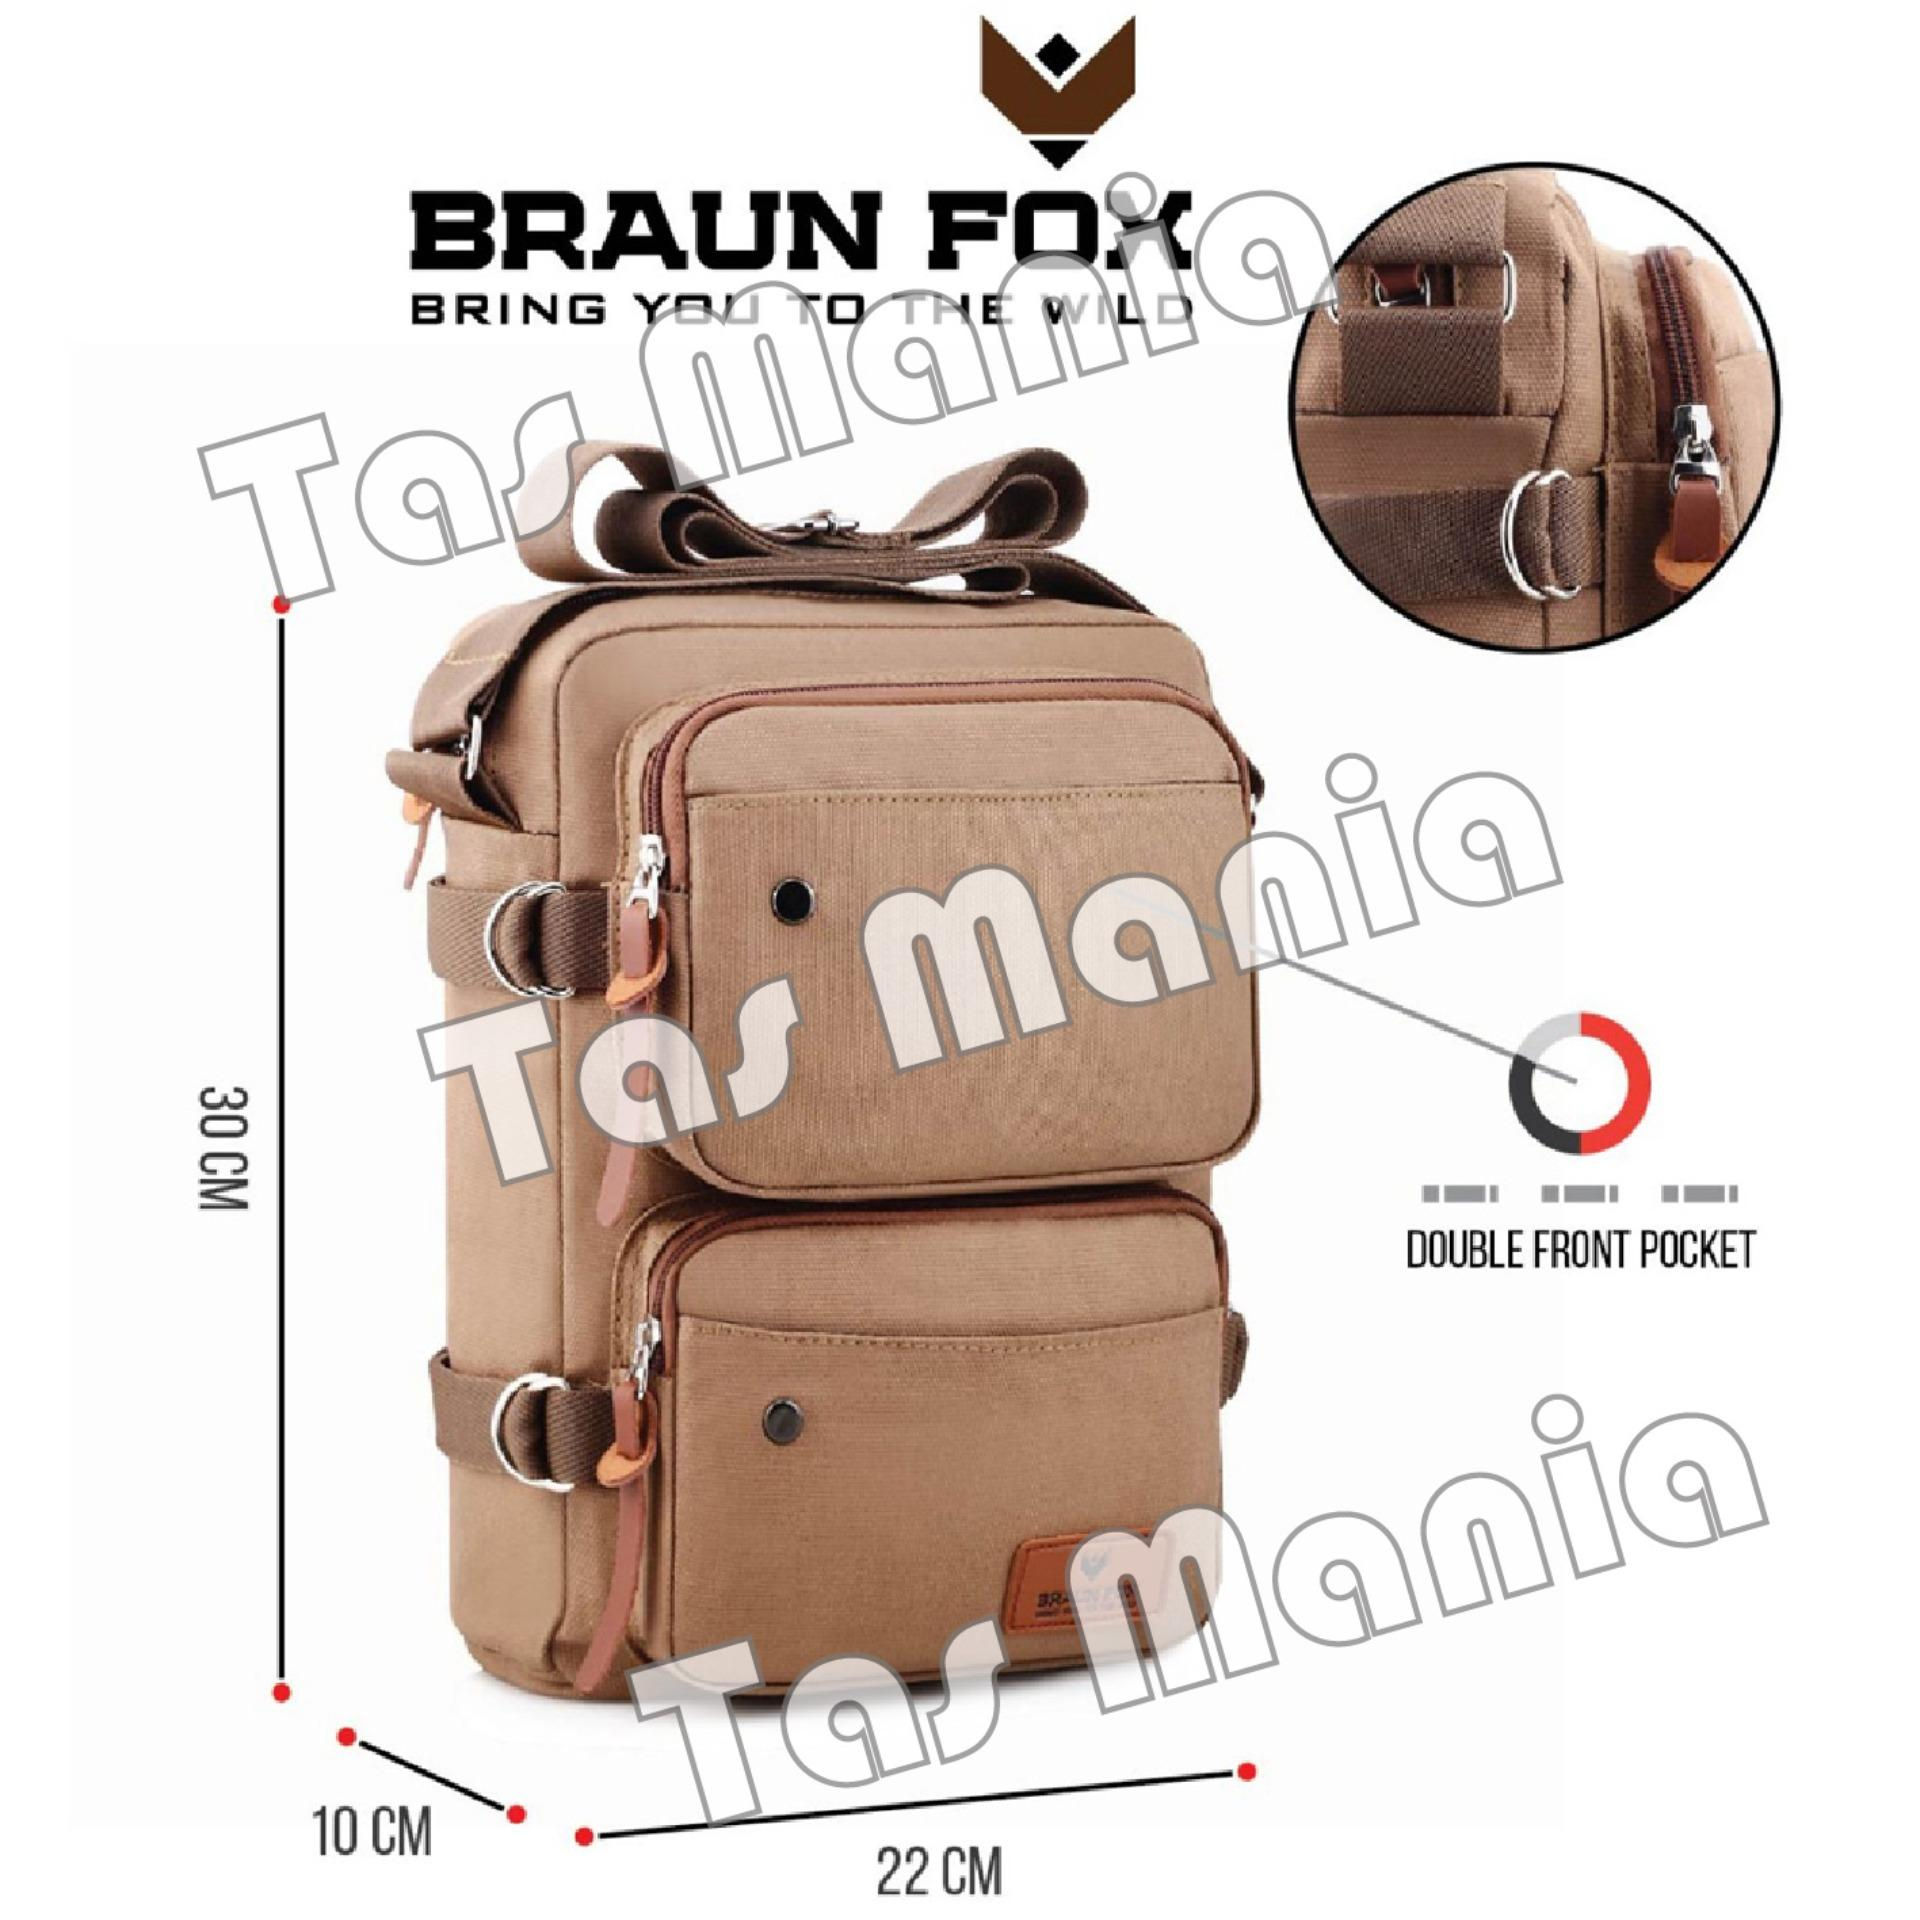 ... Slempang Man Shoulder Bag Chest Bag Import Korean Style Crossbody Eiger Consina Bodypack Decathlon Quechua TerlarisIDR58800. Rp 68.800. Tas Selempang ...